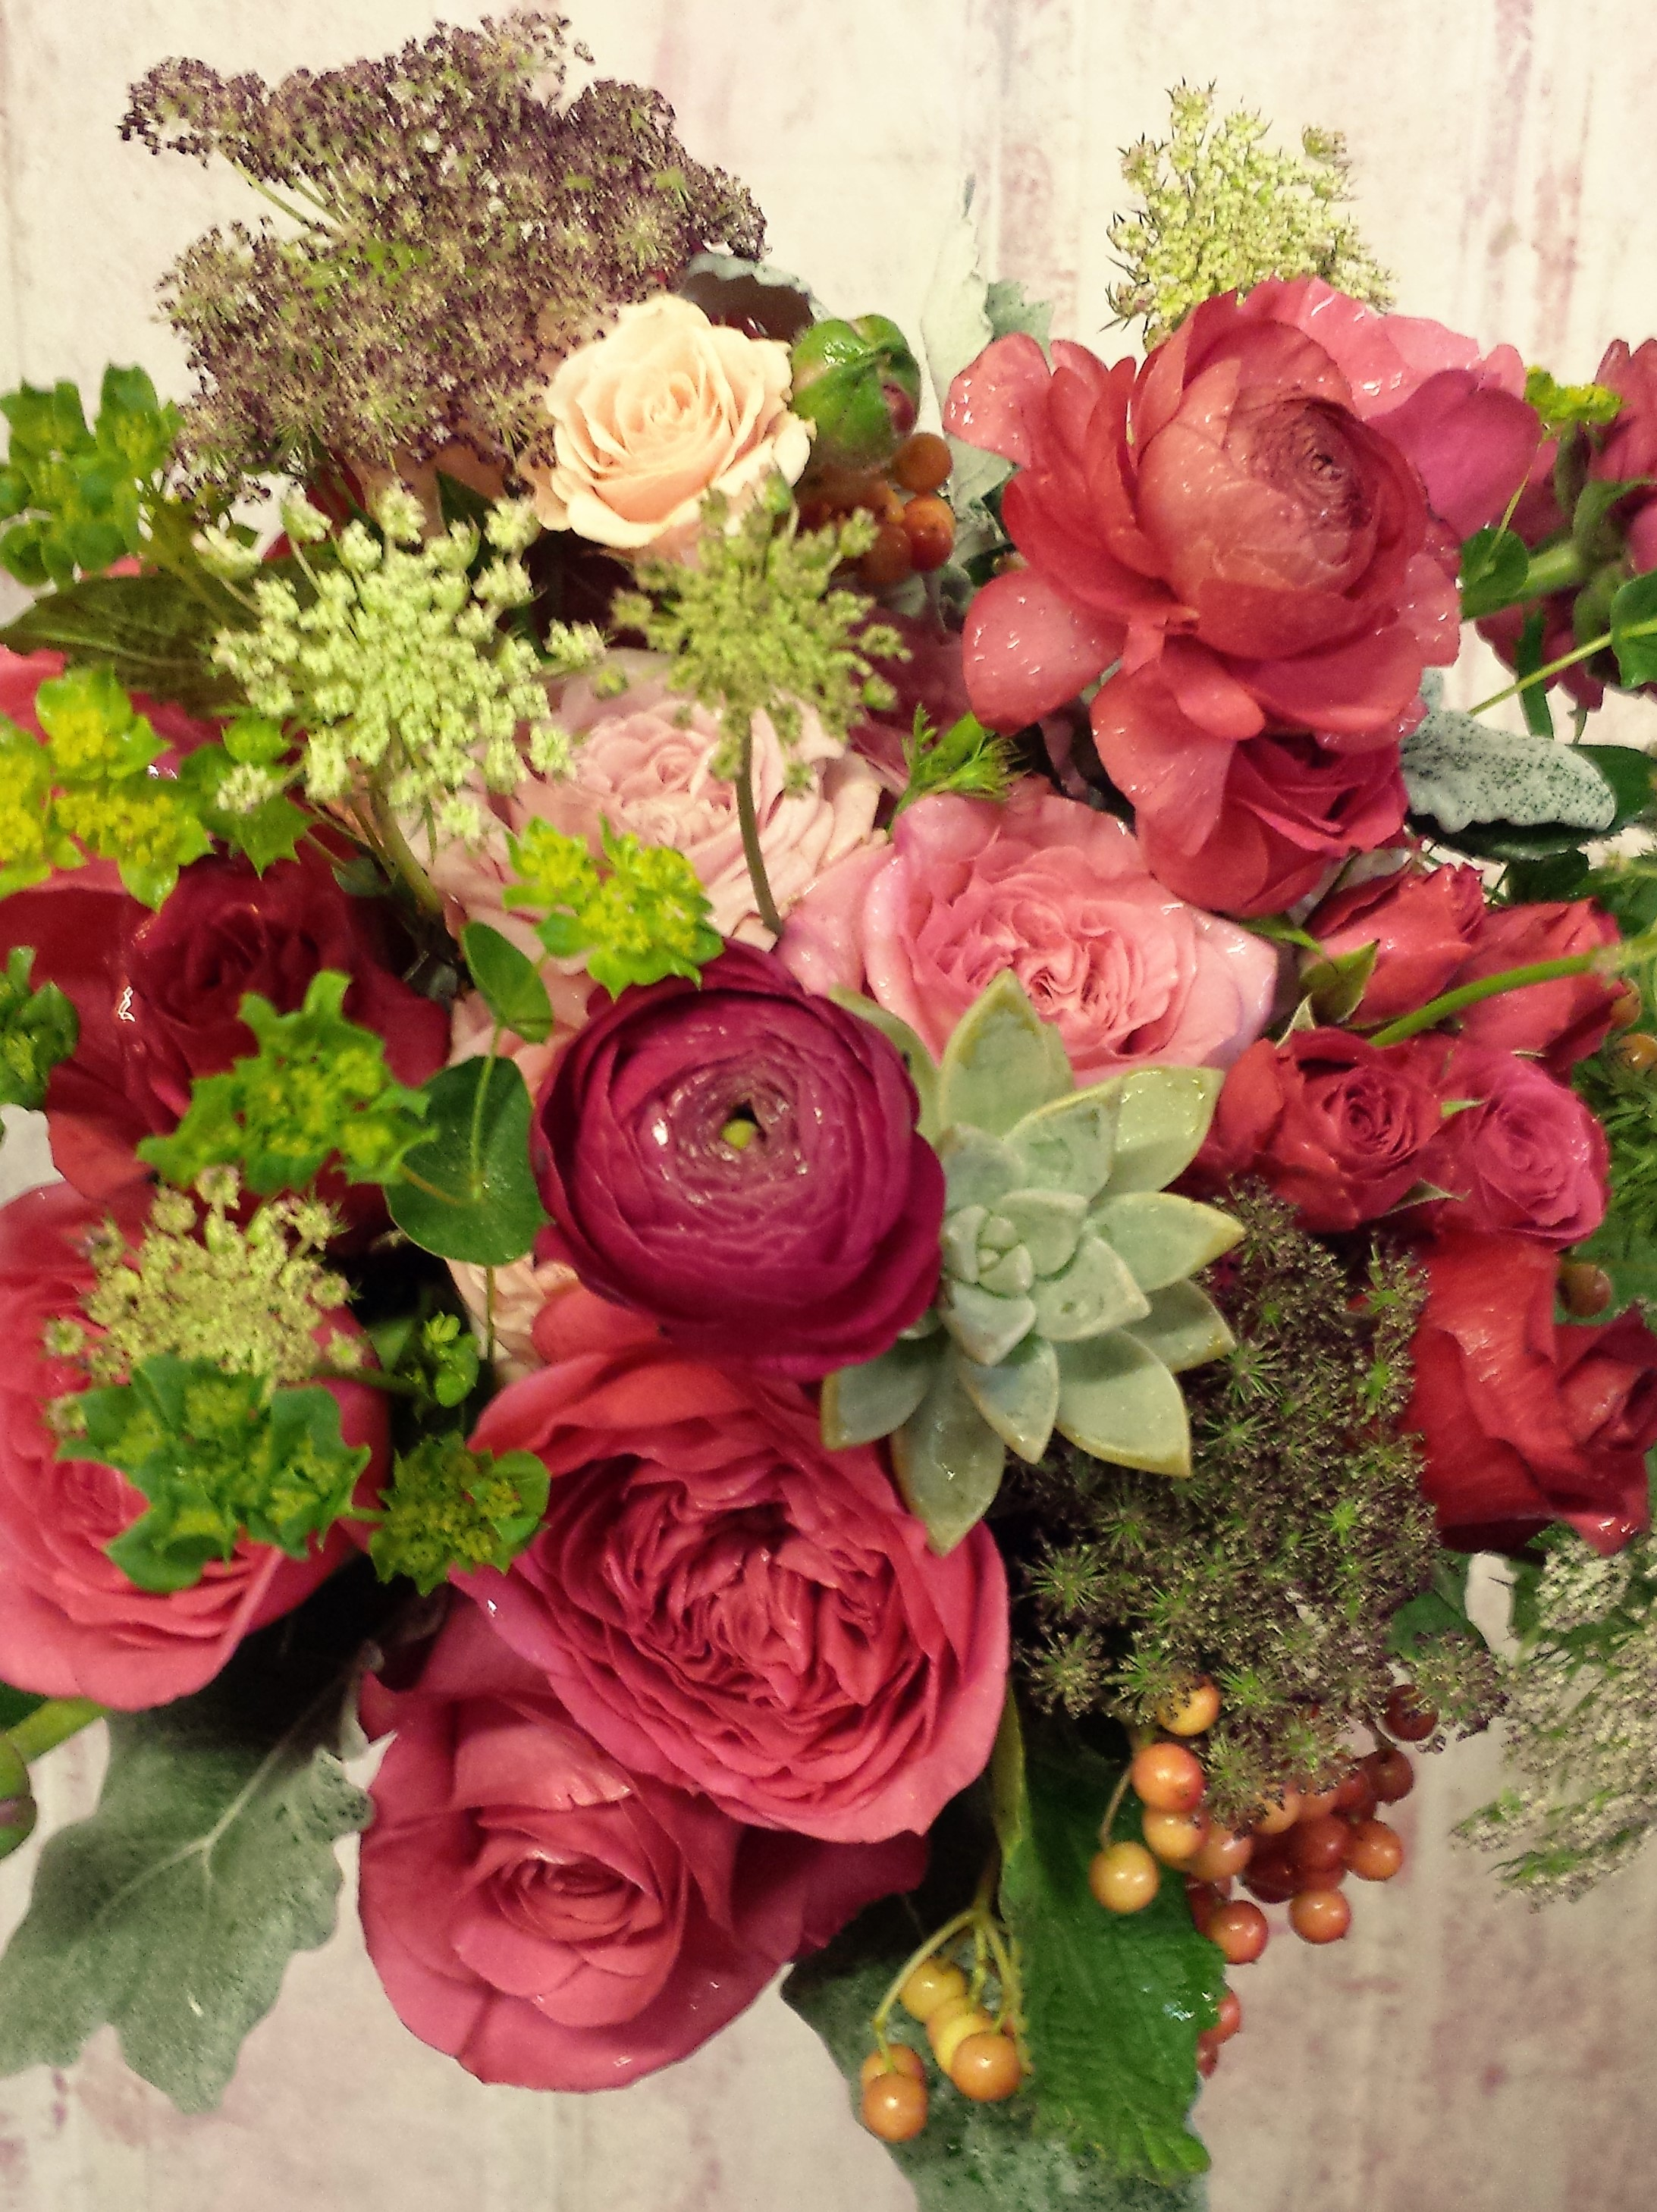 Flowers Of Distinction 28 Russell St Litchfield Ct 06759 Yp